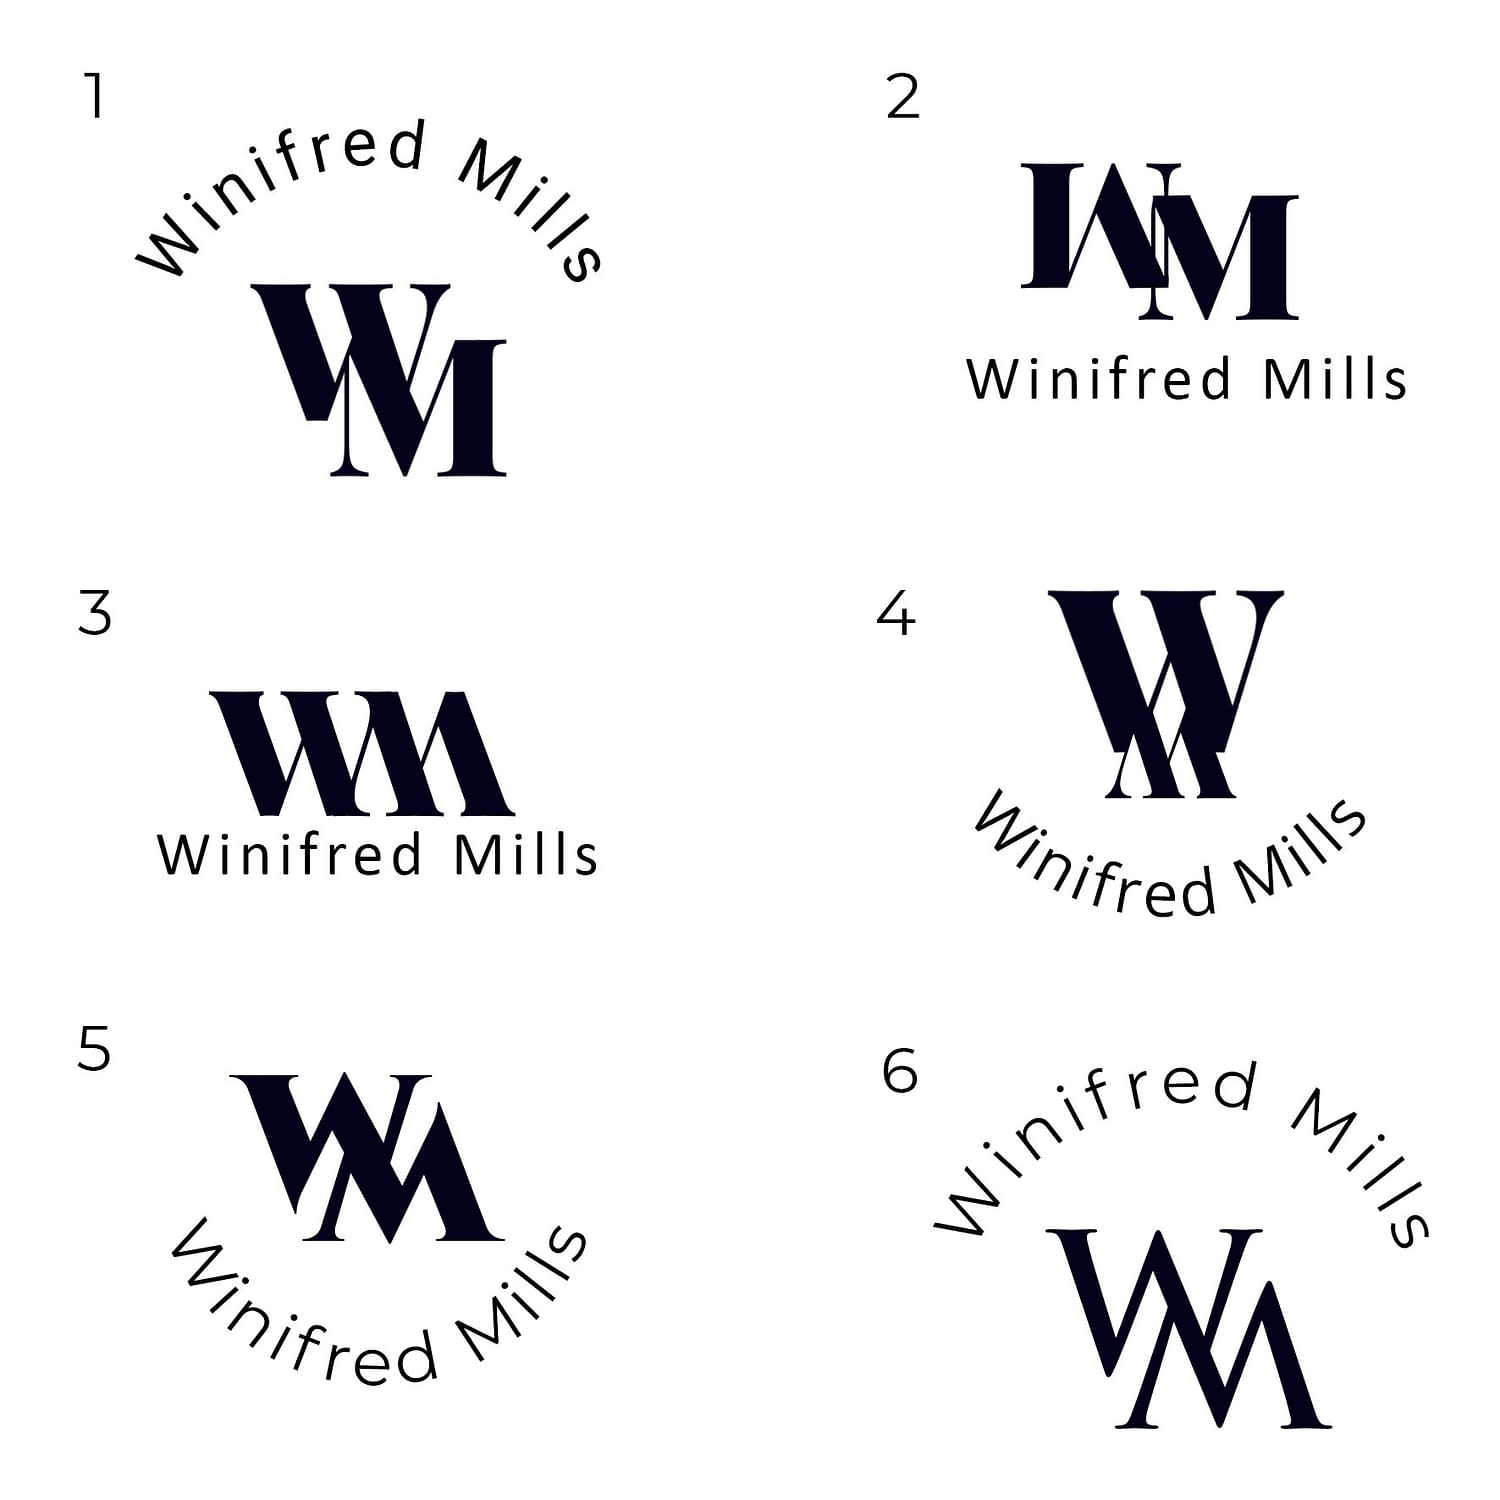 winifred mills_logo compositions